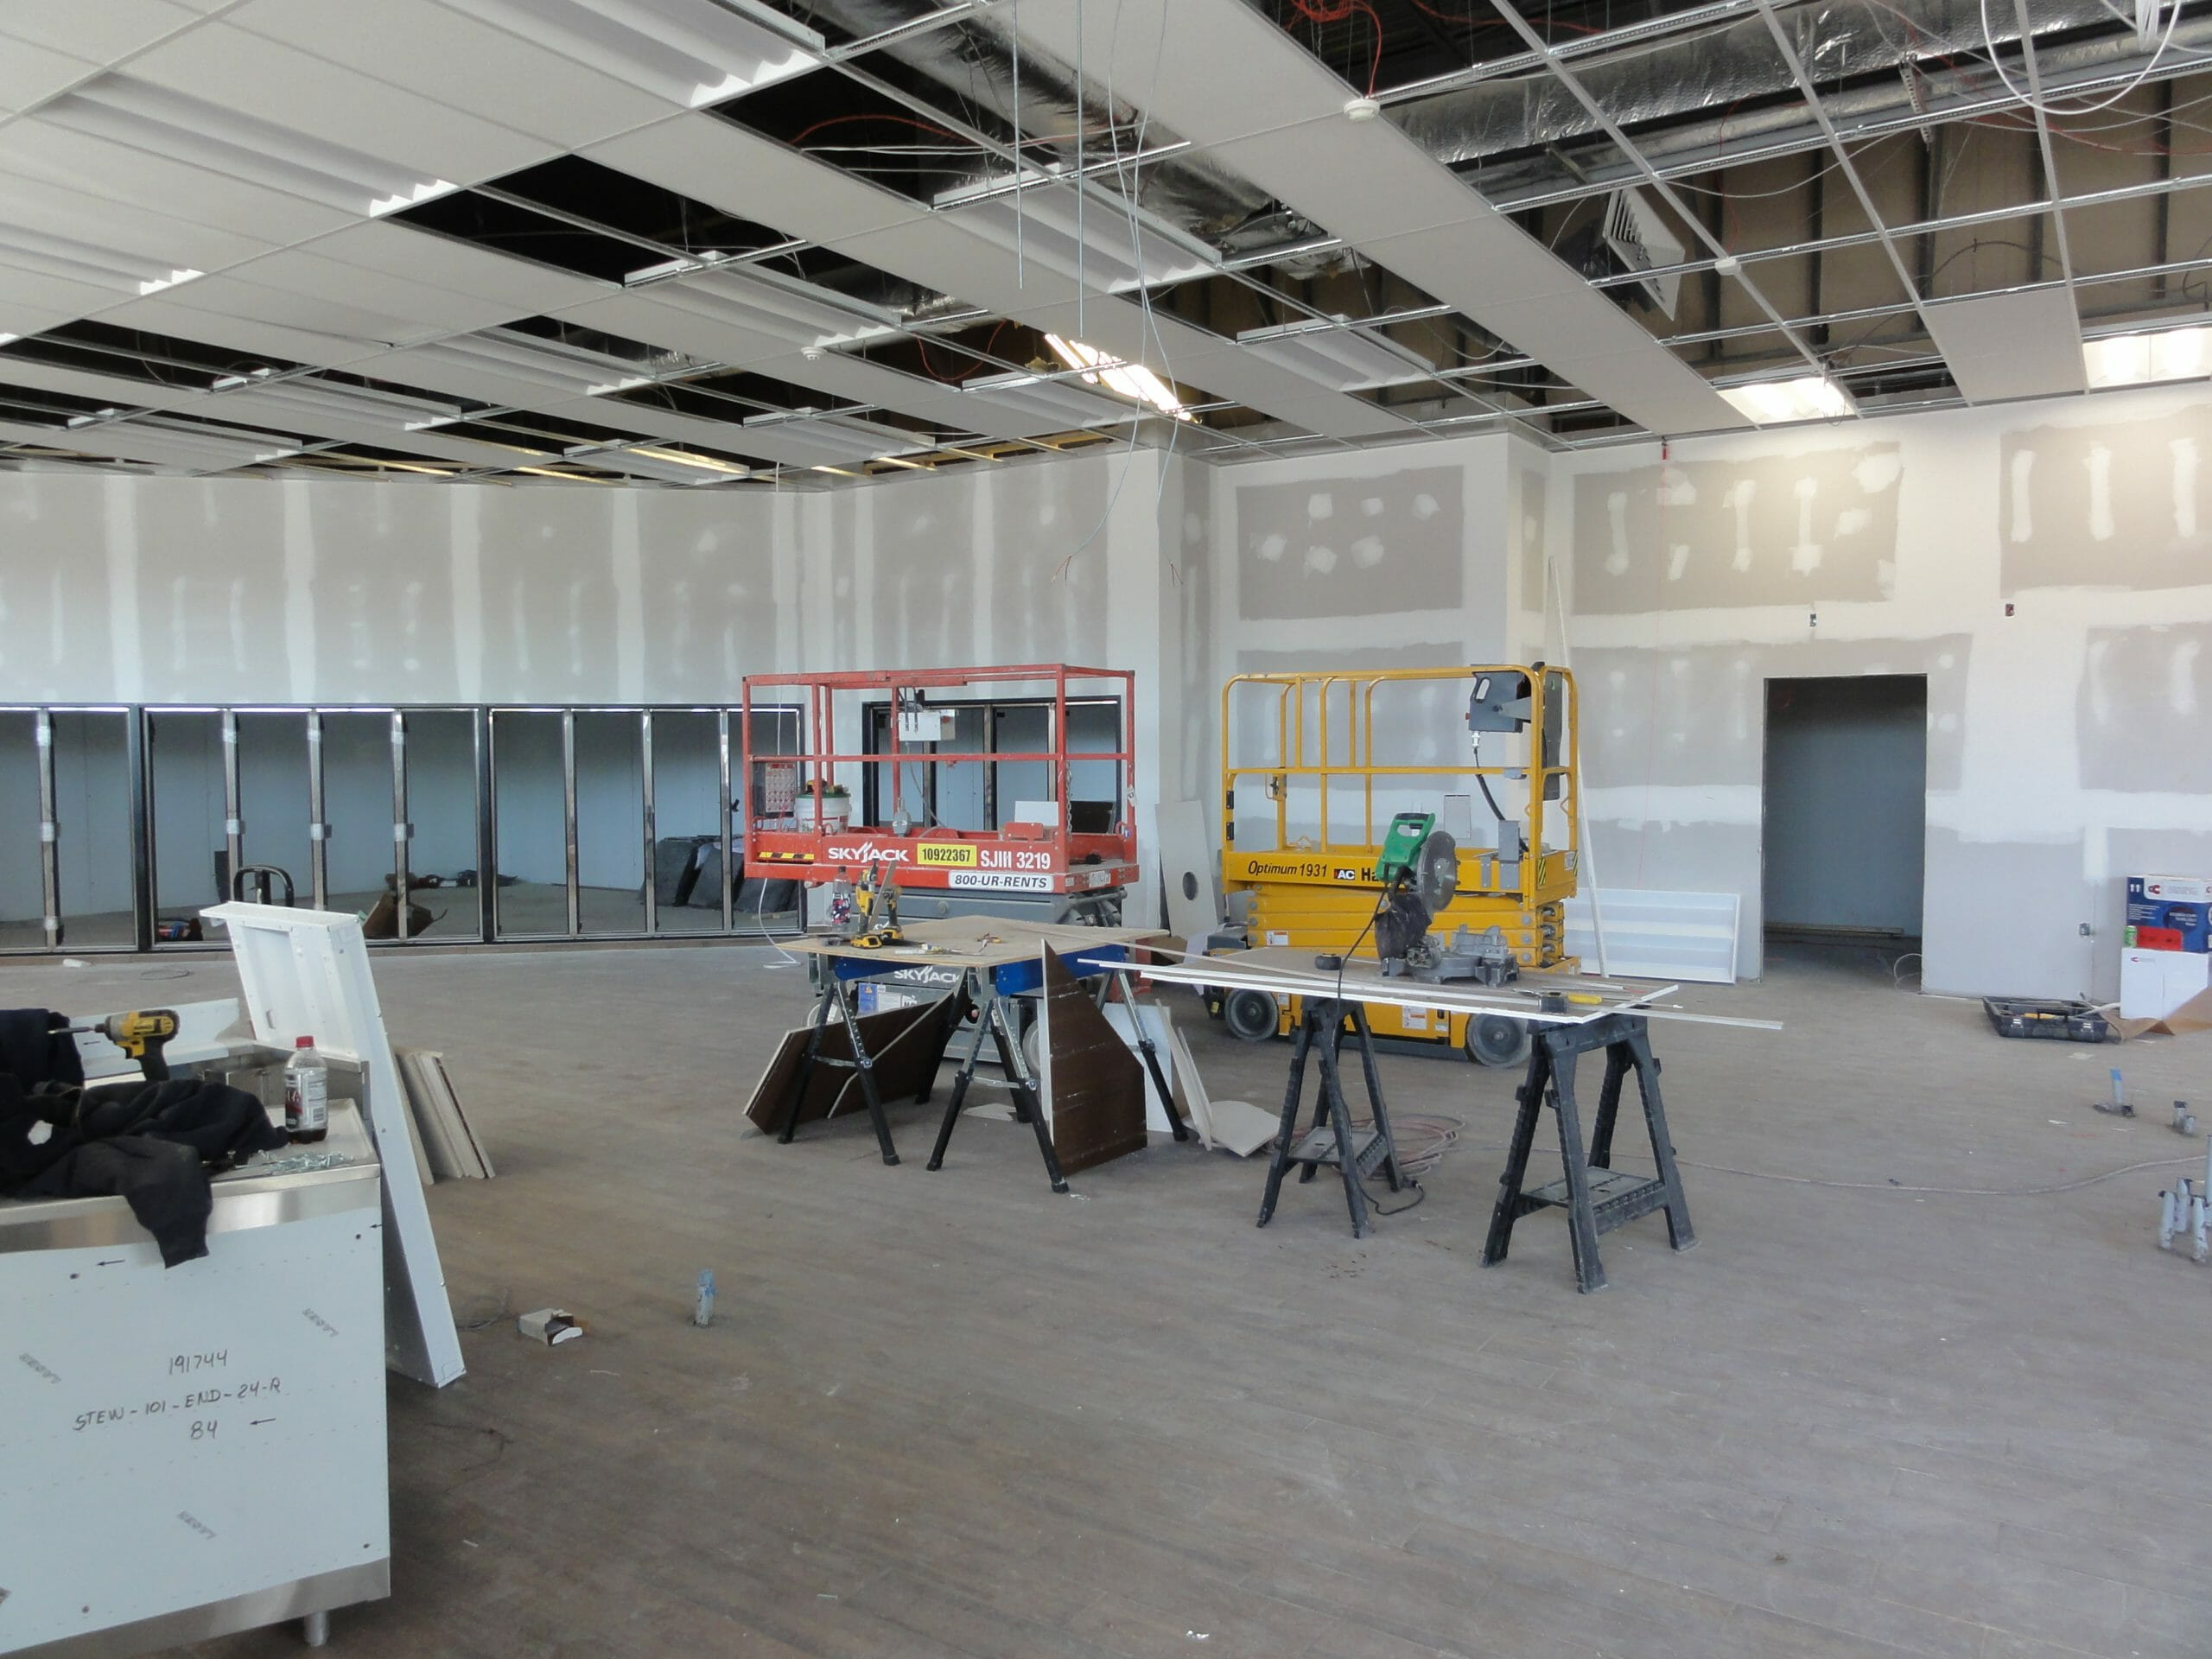 ceiling tiles going in